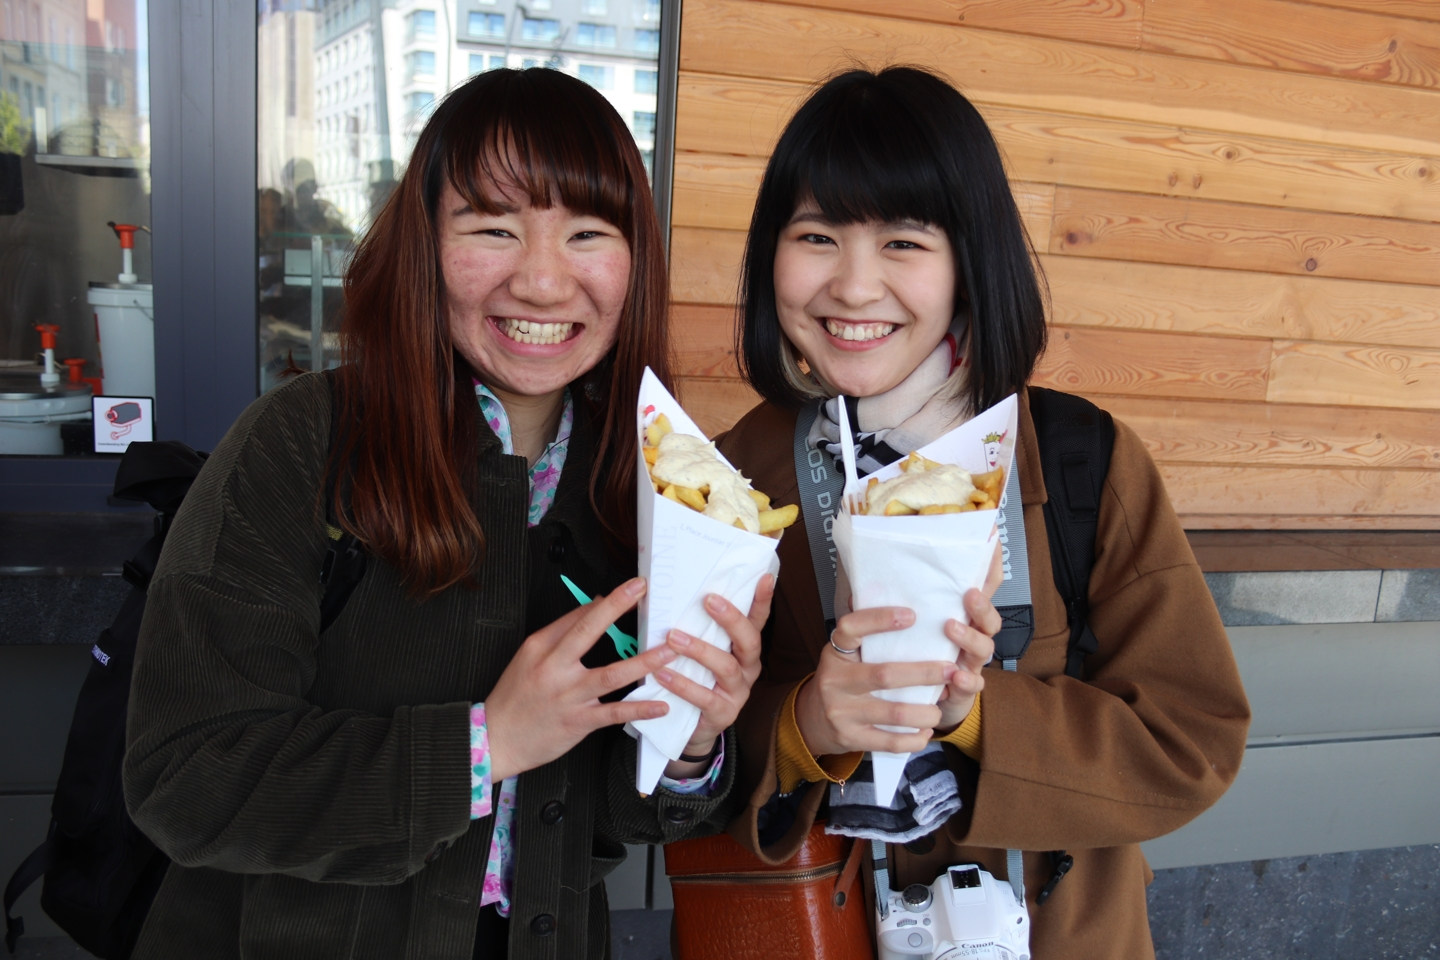 Two students smiling and holding belgian fries